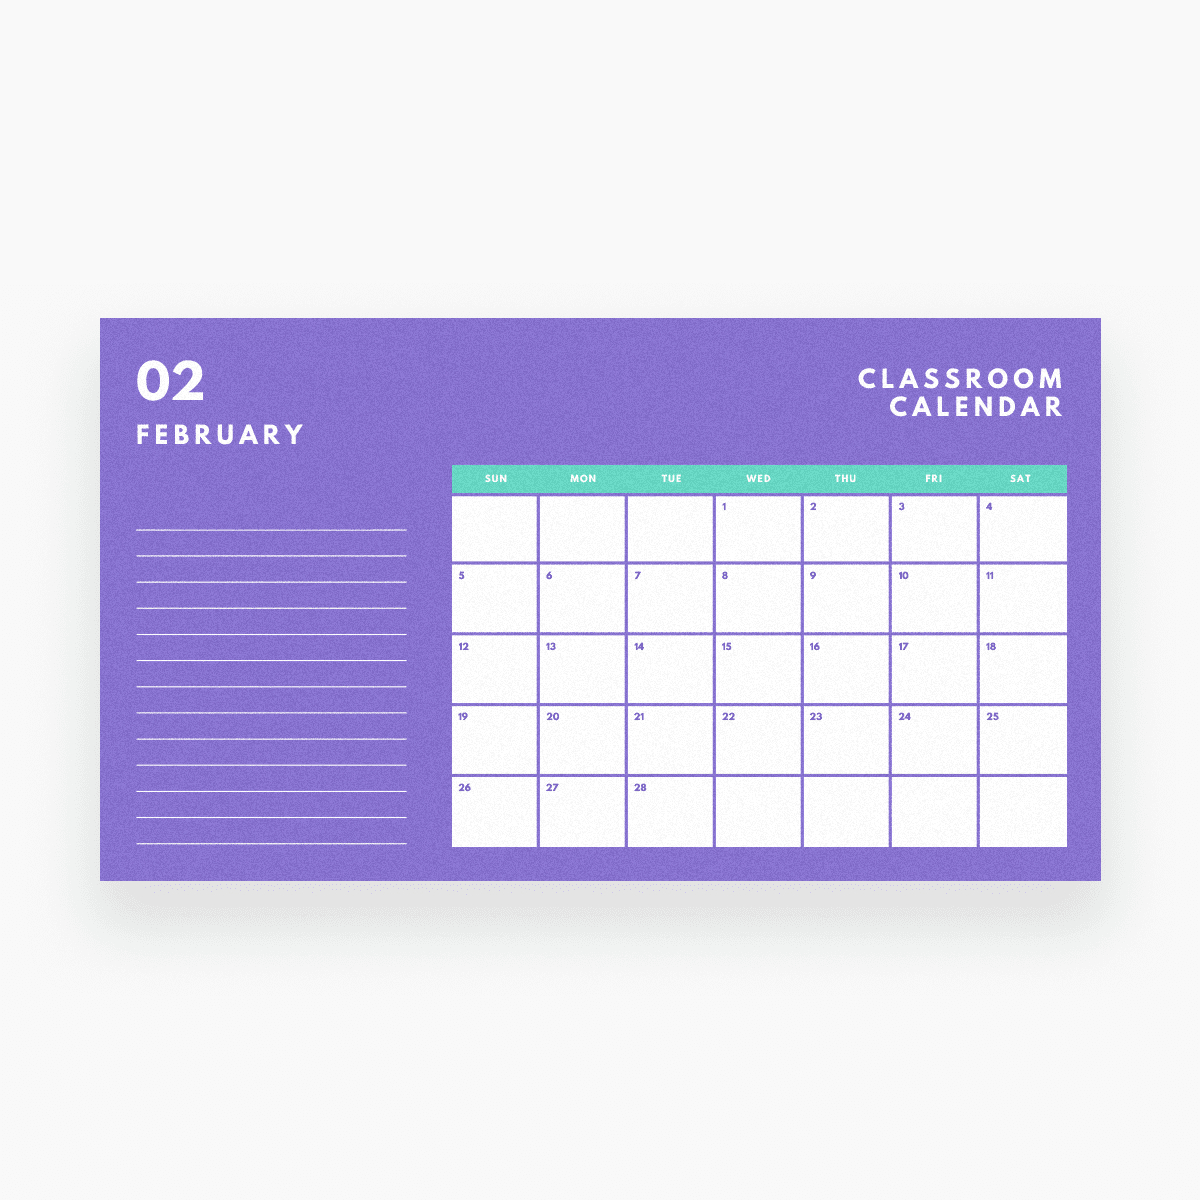 Free Online Calendar Maker: Design A Custom Calendar - Canva Free Calendar To Edit And Save